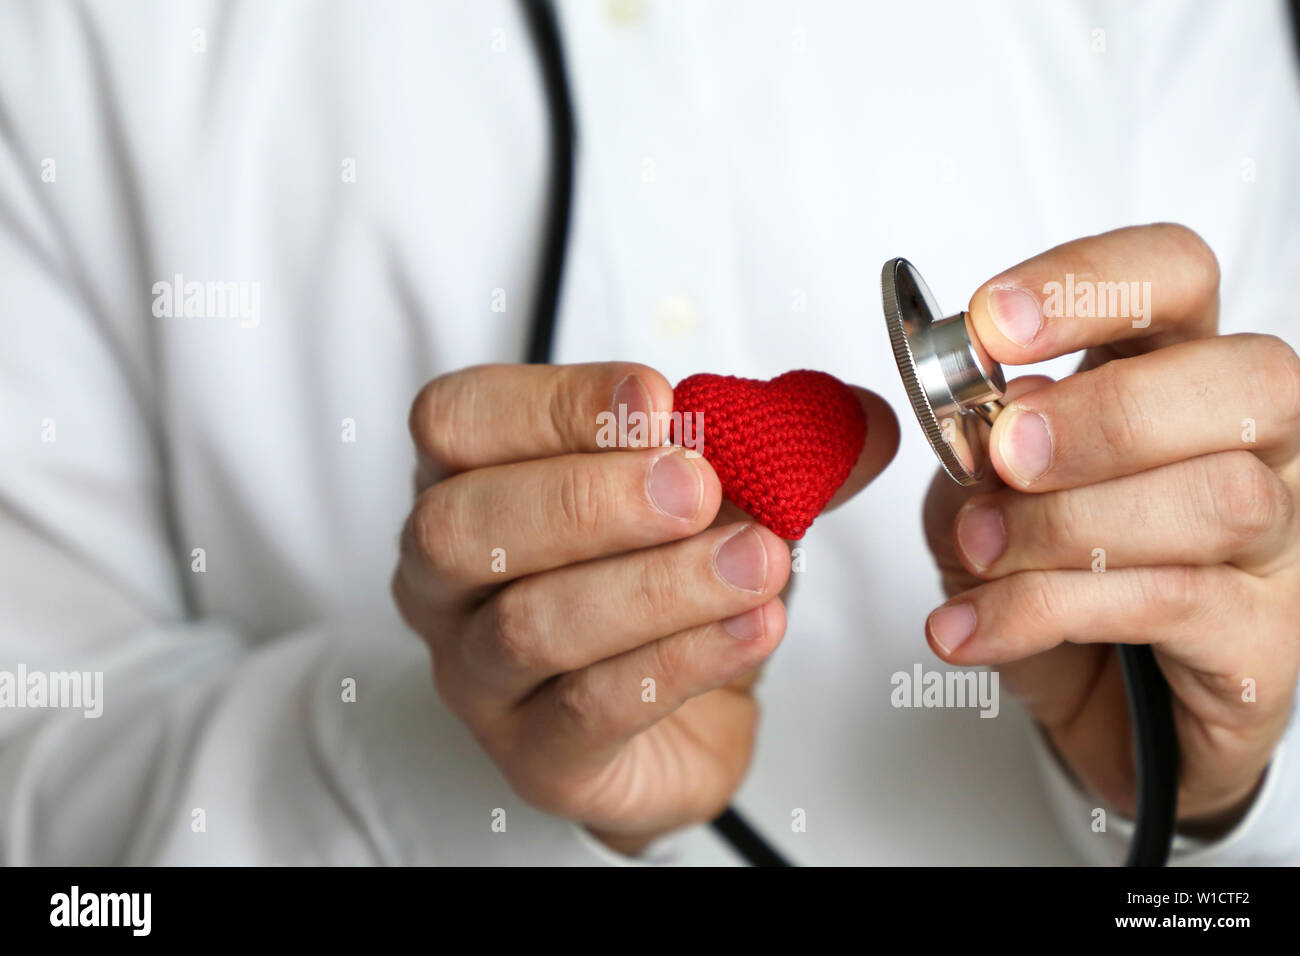 Doctor with stethoscope and red knitted heart in hand. Concept of cardiologist, heart diseases, diagnosis, blood pressure, medical exam - Stock Photo